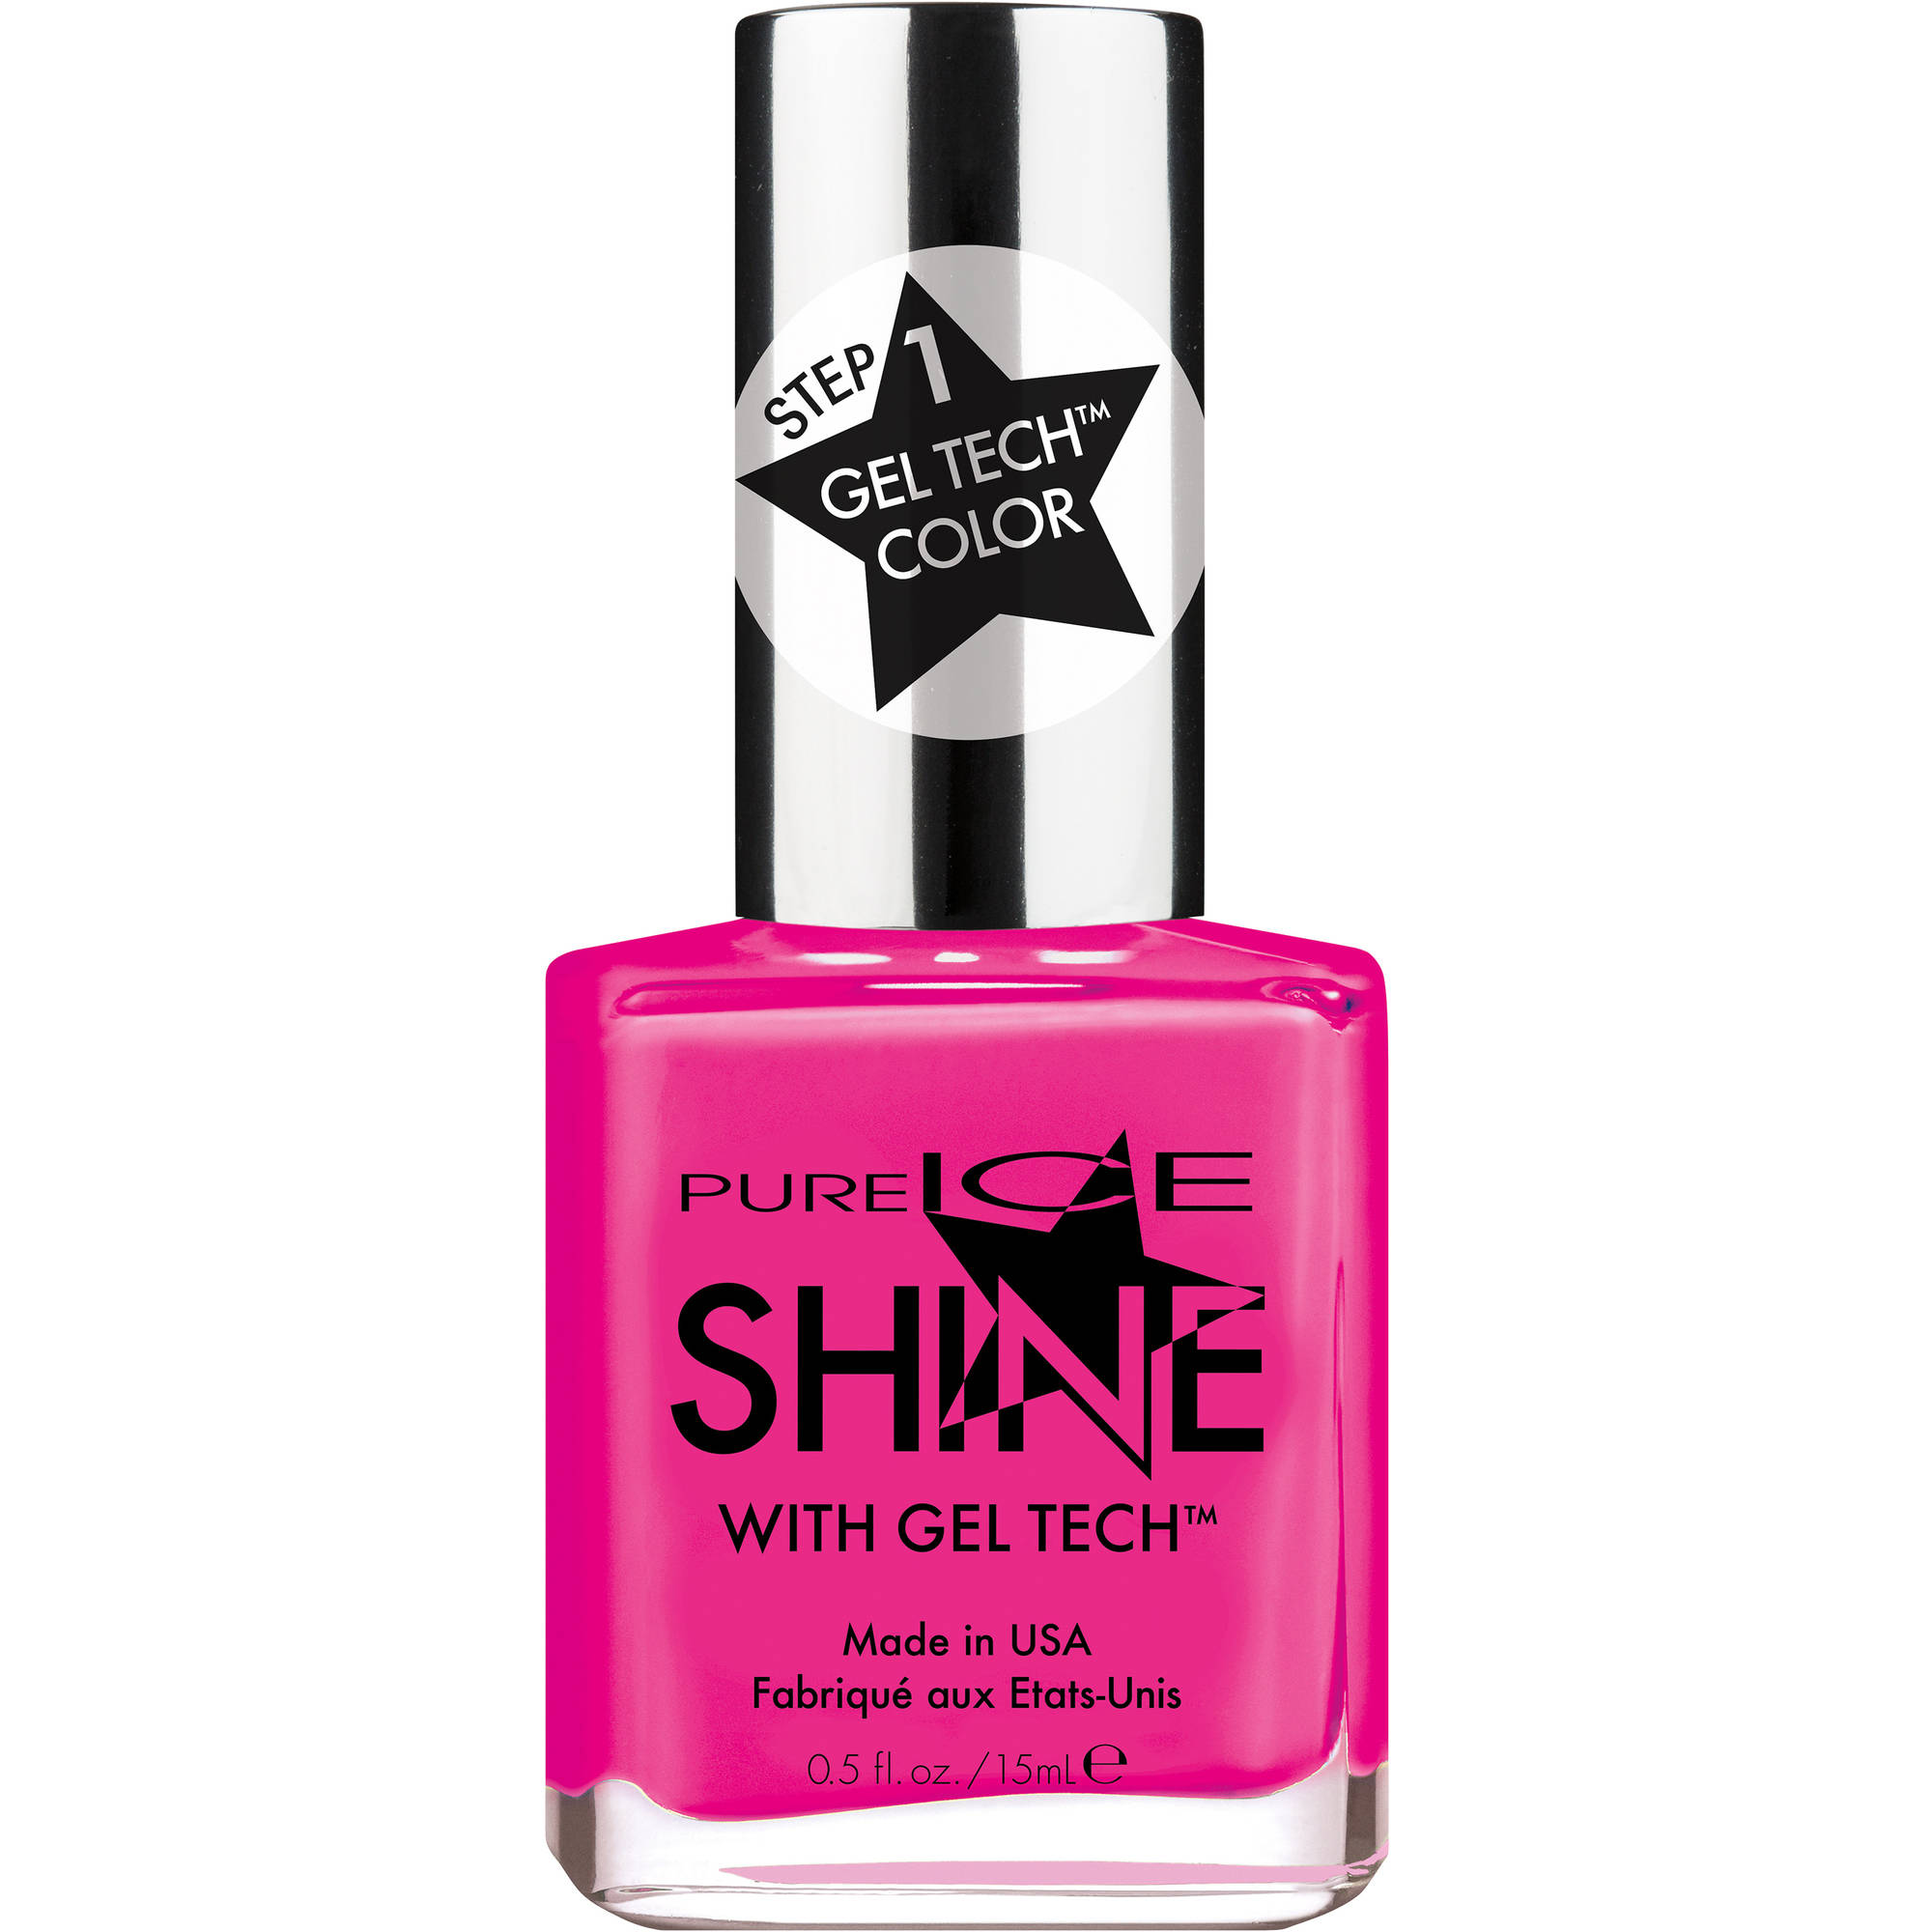 Pure Ice Shine with Gel Tech Nail Polish, Crop Top, 0.5 fl oz